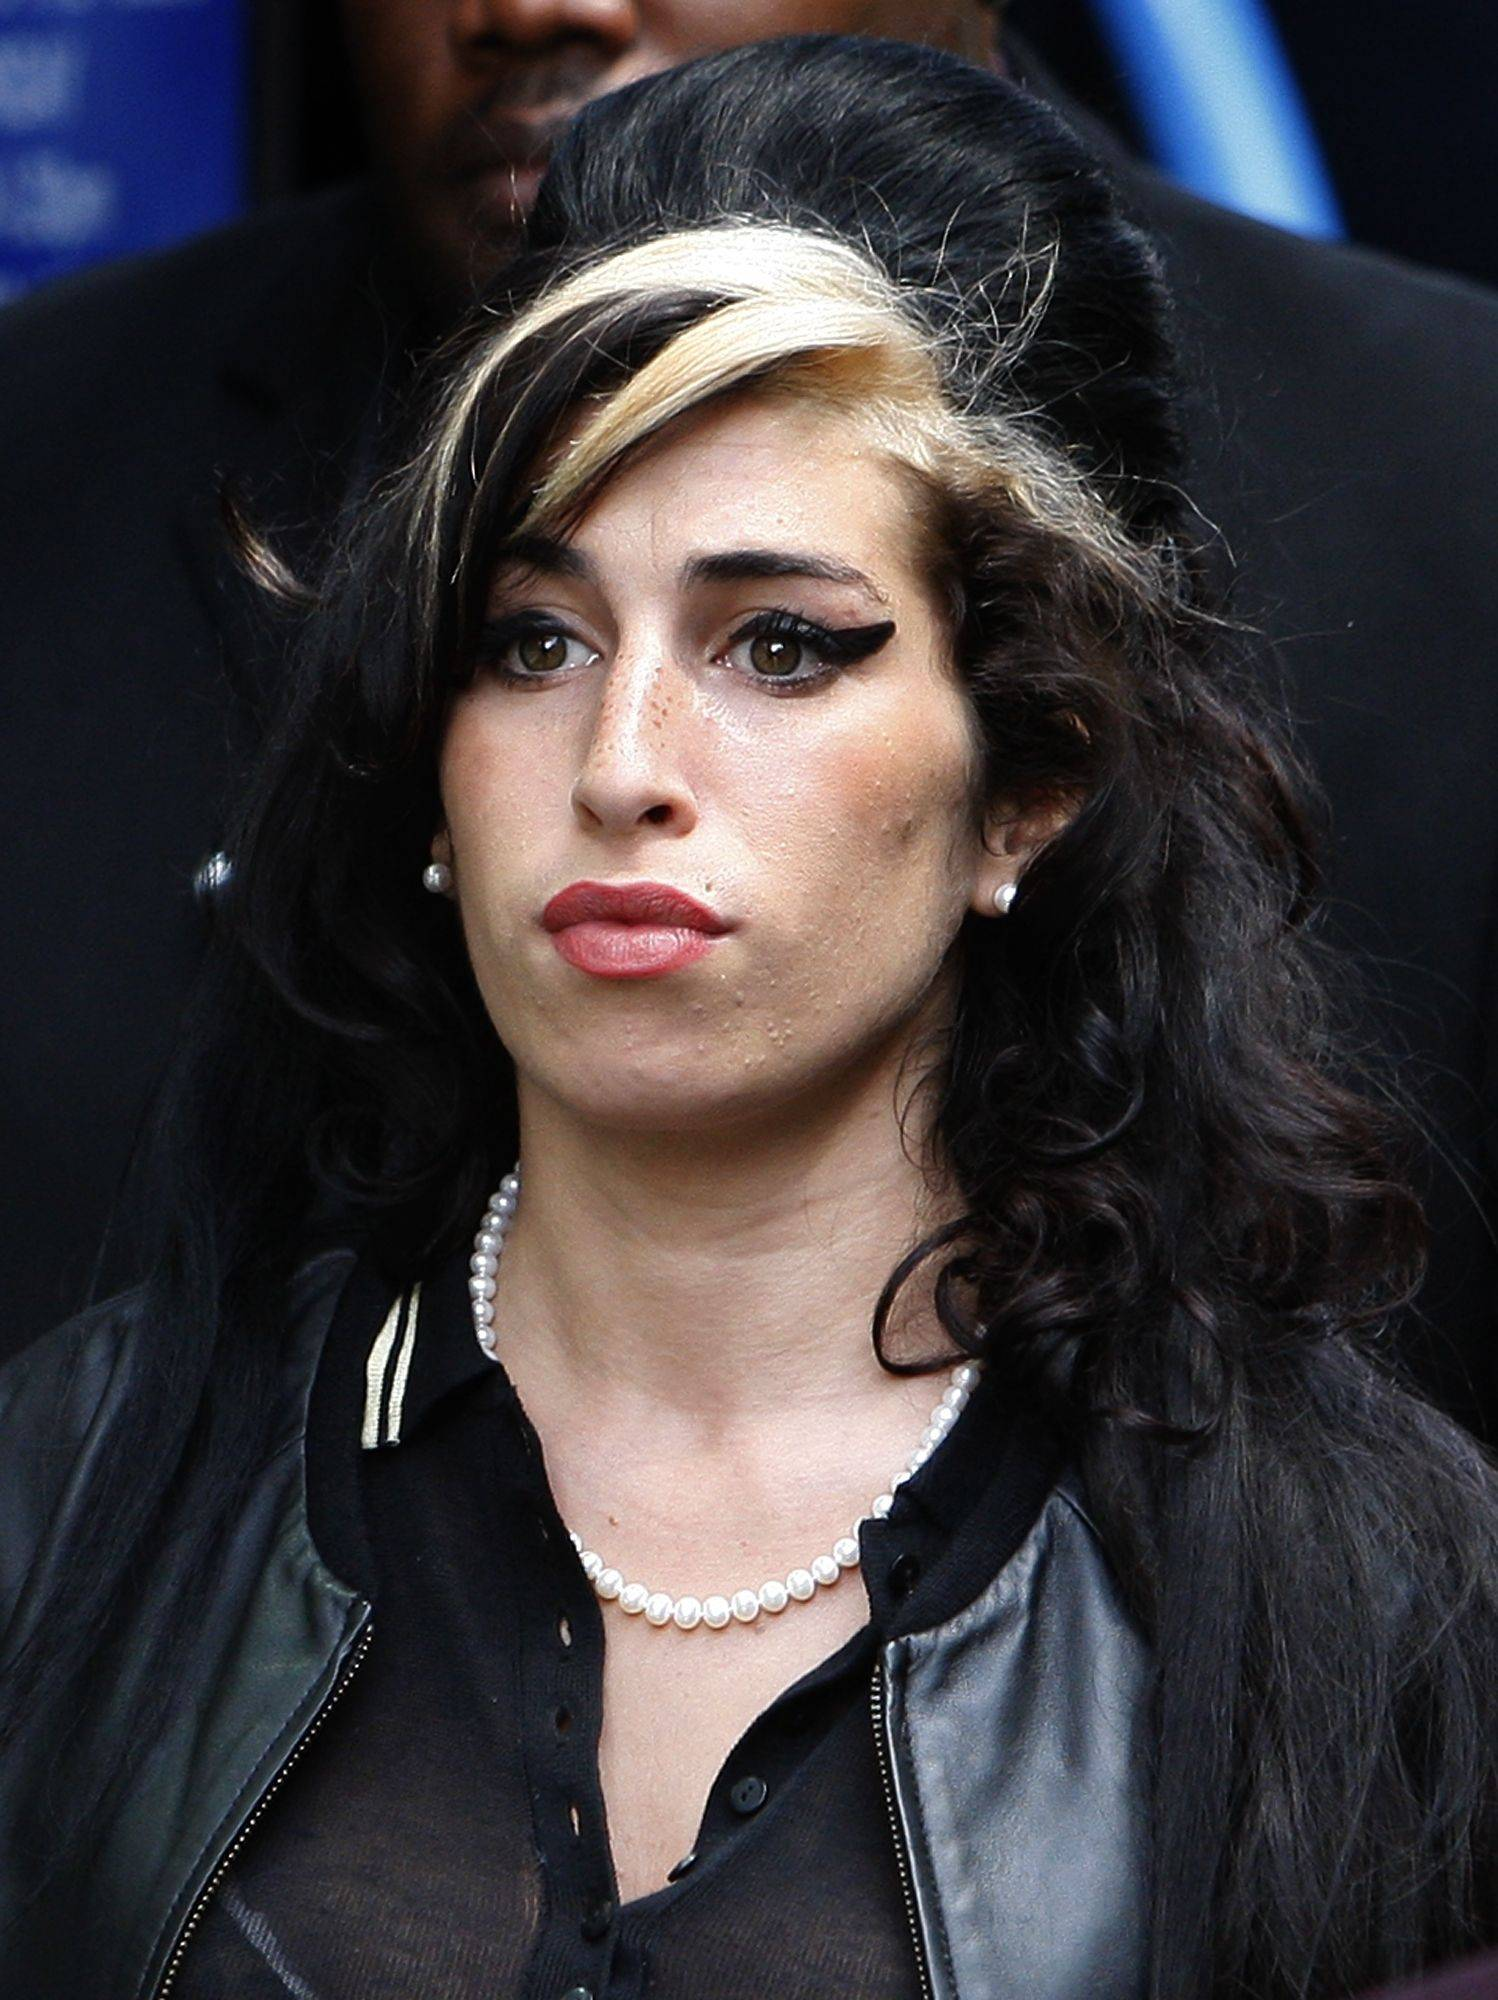 The family of Amy Winehouse said no illegal drugs were found in the system of the late British singer. Winehouse was found dead July 23.